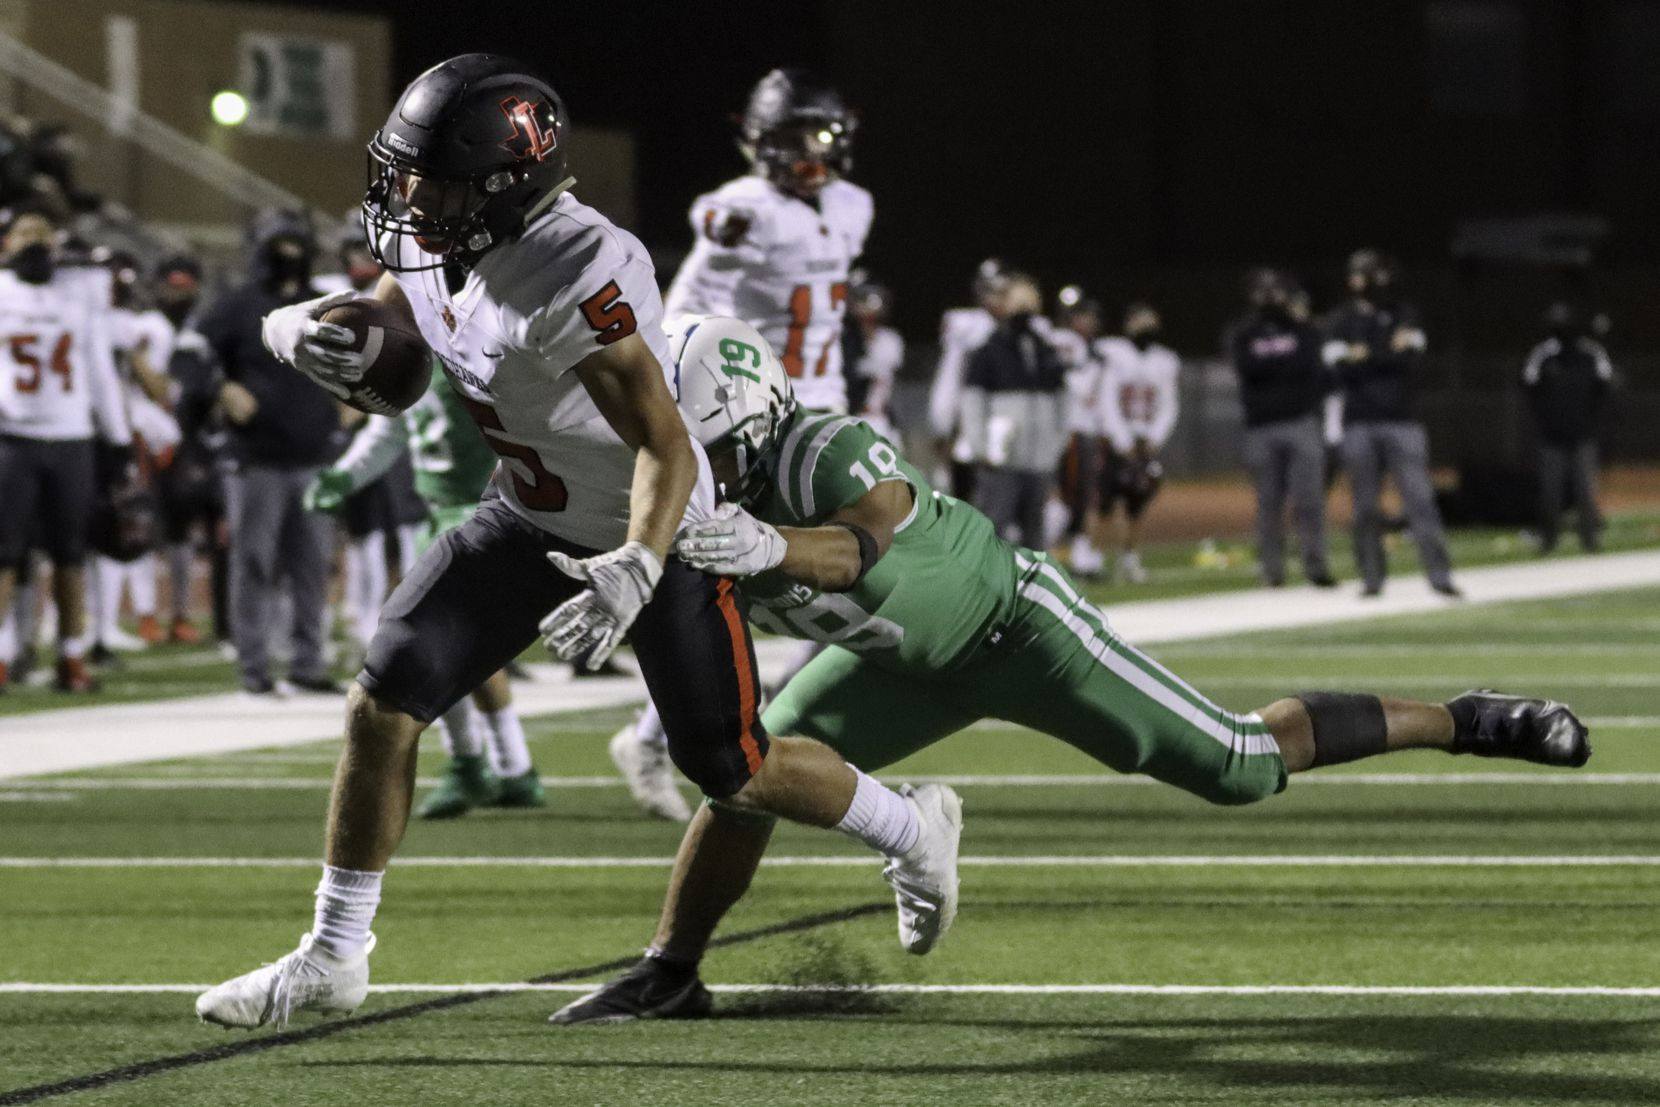 Lake Dallas defensive back Anthony Lunca (19) tries to tackle Frisco Liberty running back Will Ashmore (5) during the second half at Falcon Stadium in Corinth, Texas Friday, October 23, 2020. (Elias Valverde II / Special Contributor)